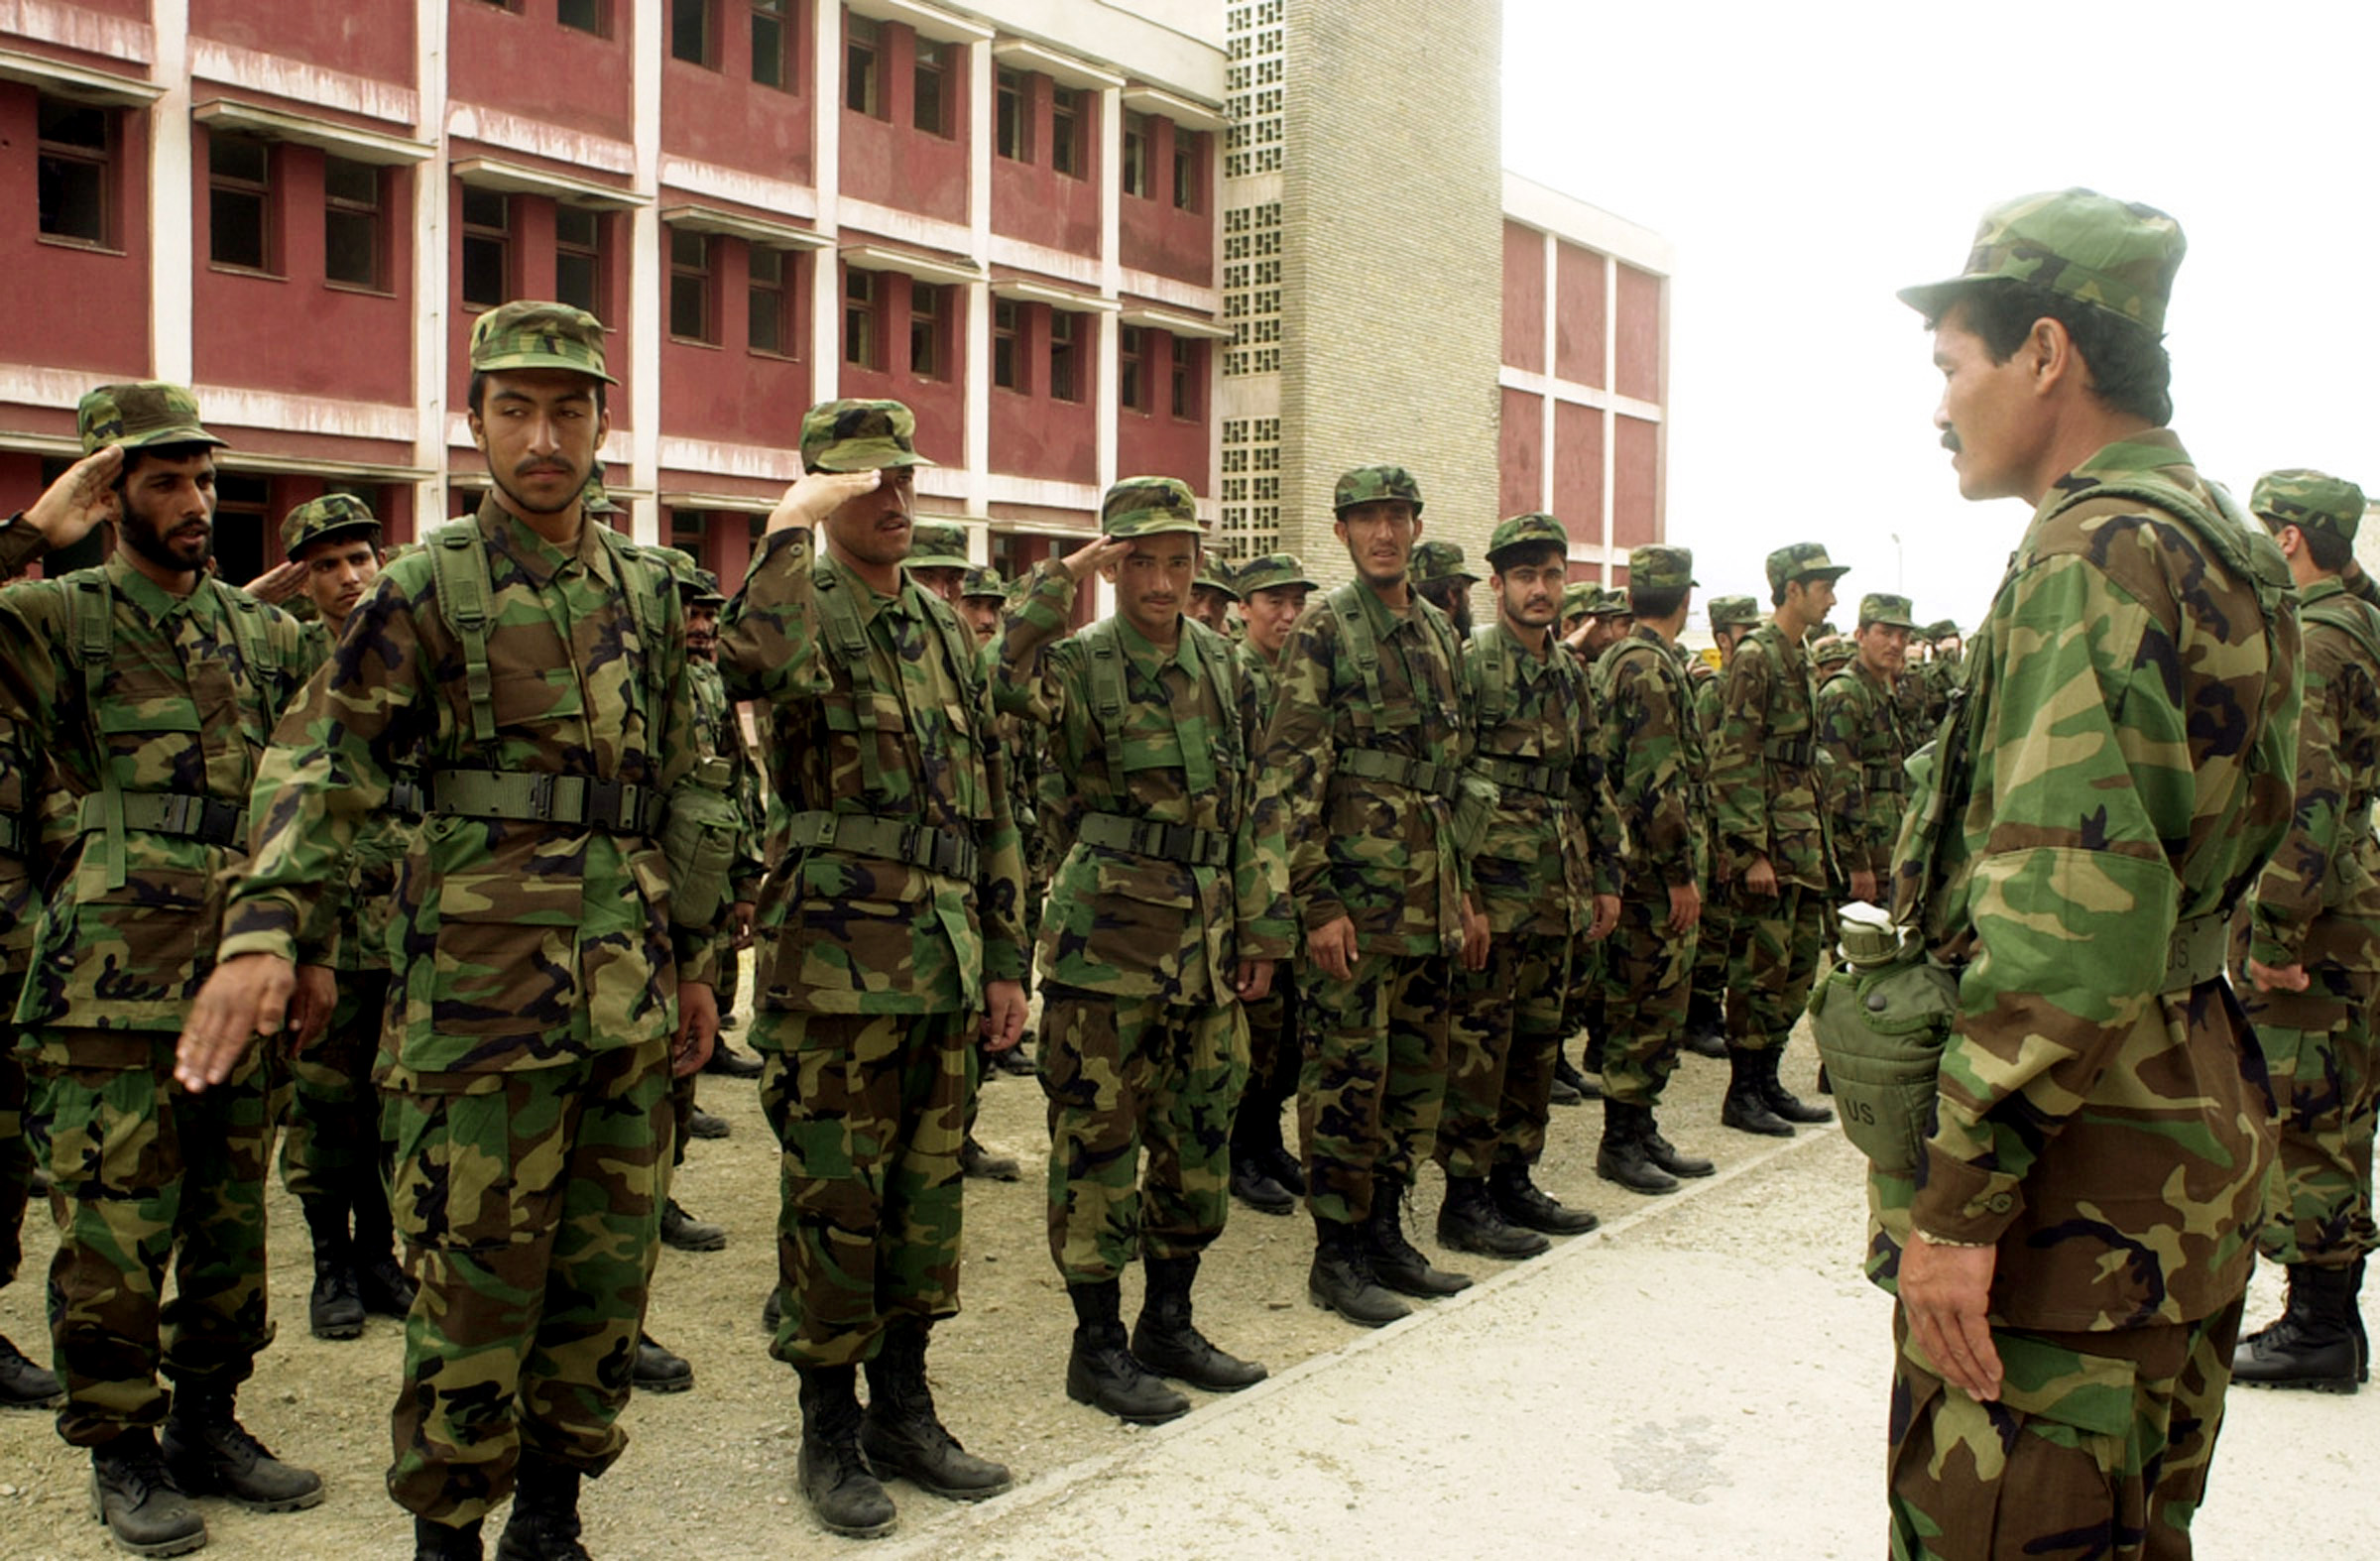 Fotos Del Army http://es.wikipedia.org/wiki/Archivo:New_recruits_of_the_Afghan_National_Army.jpg